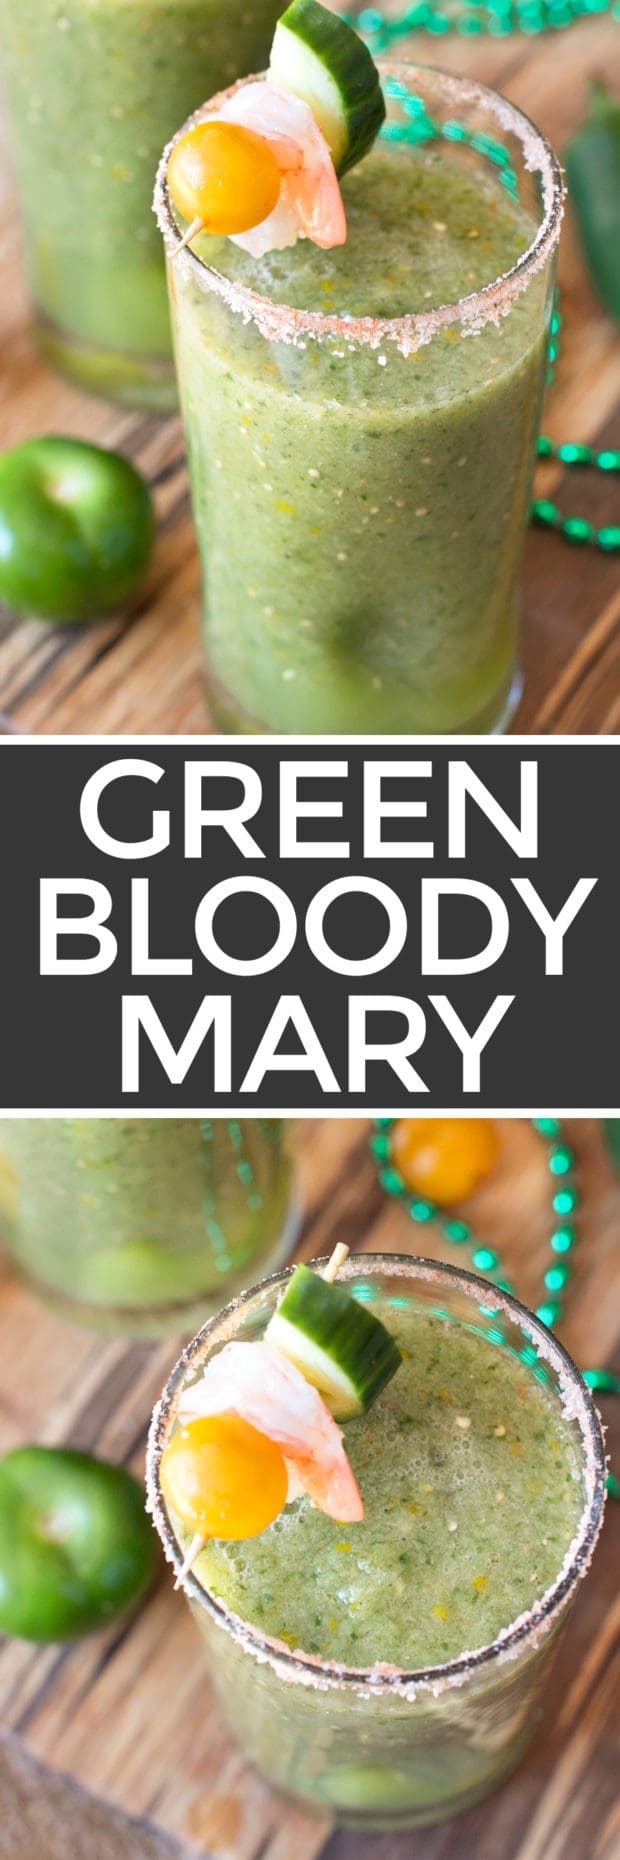 Spicy Green Bloody Mary | cakenknife.com #brunch #bloodymary